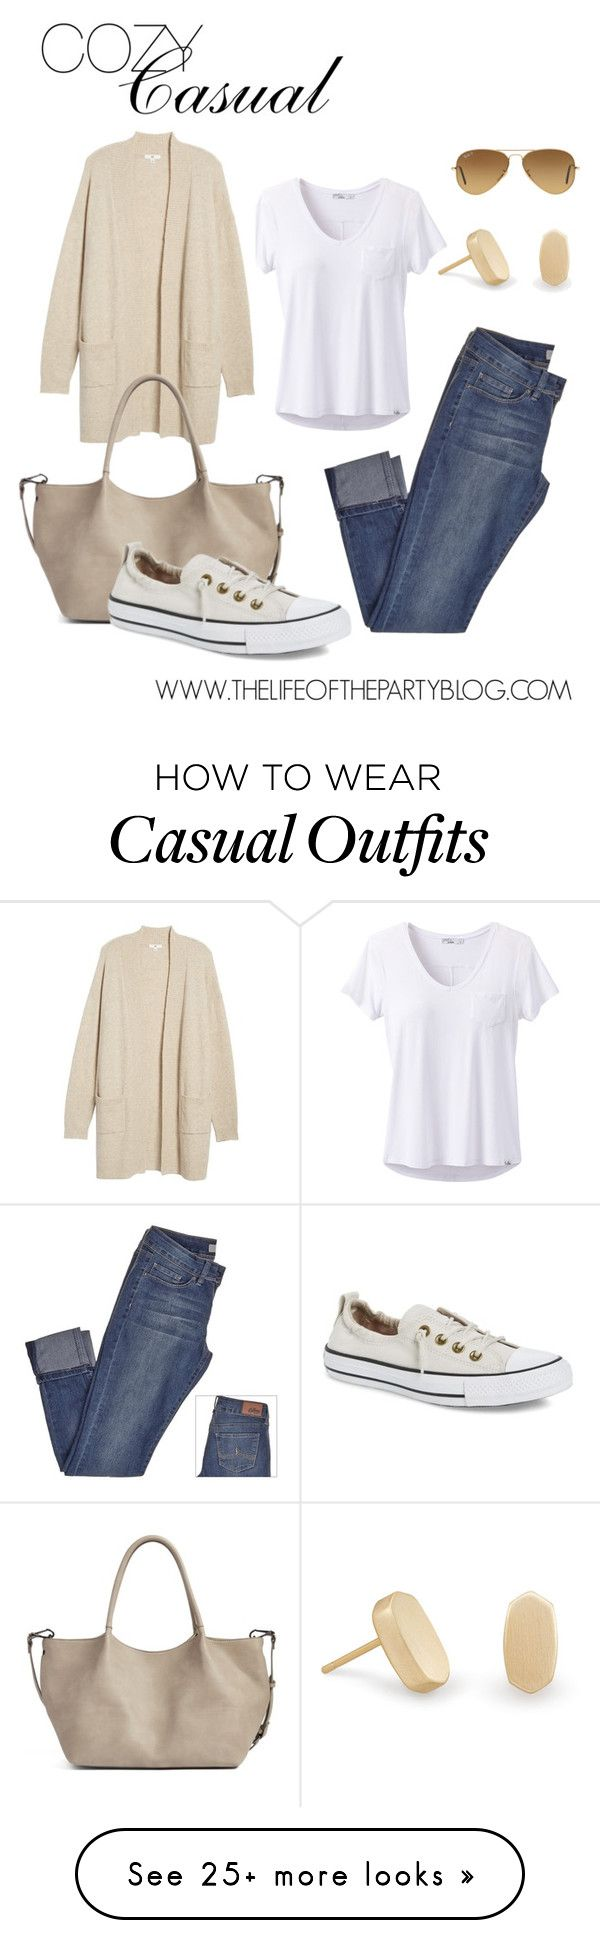 """Cozy Casual"" by thelifeoftheparty on Polyvore featuring prAna, BP., Sole Society, Converse, Kendra Scott and Ray-Ban"